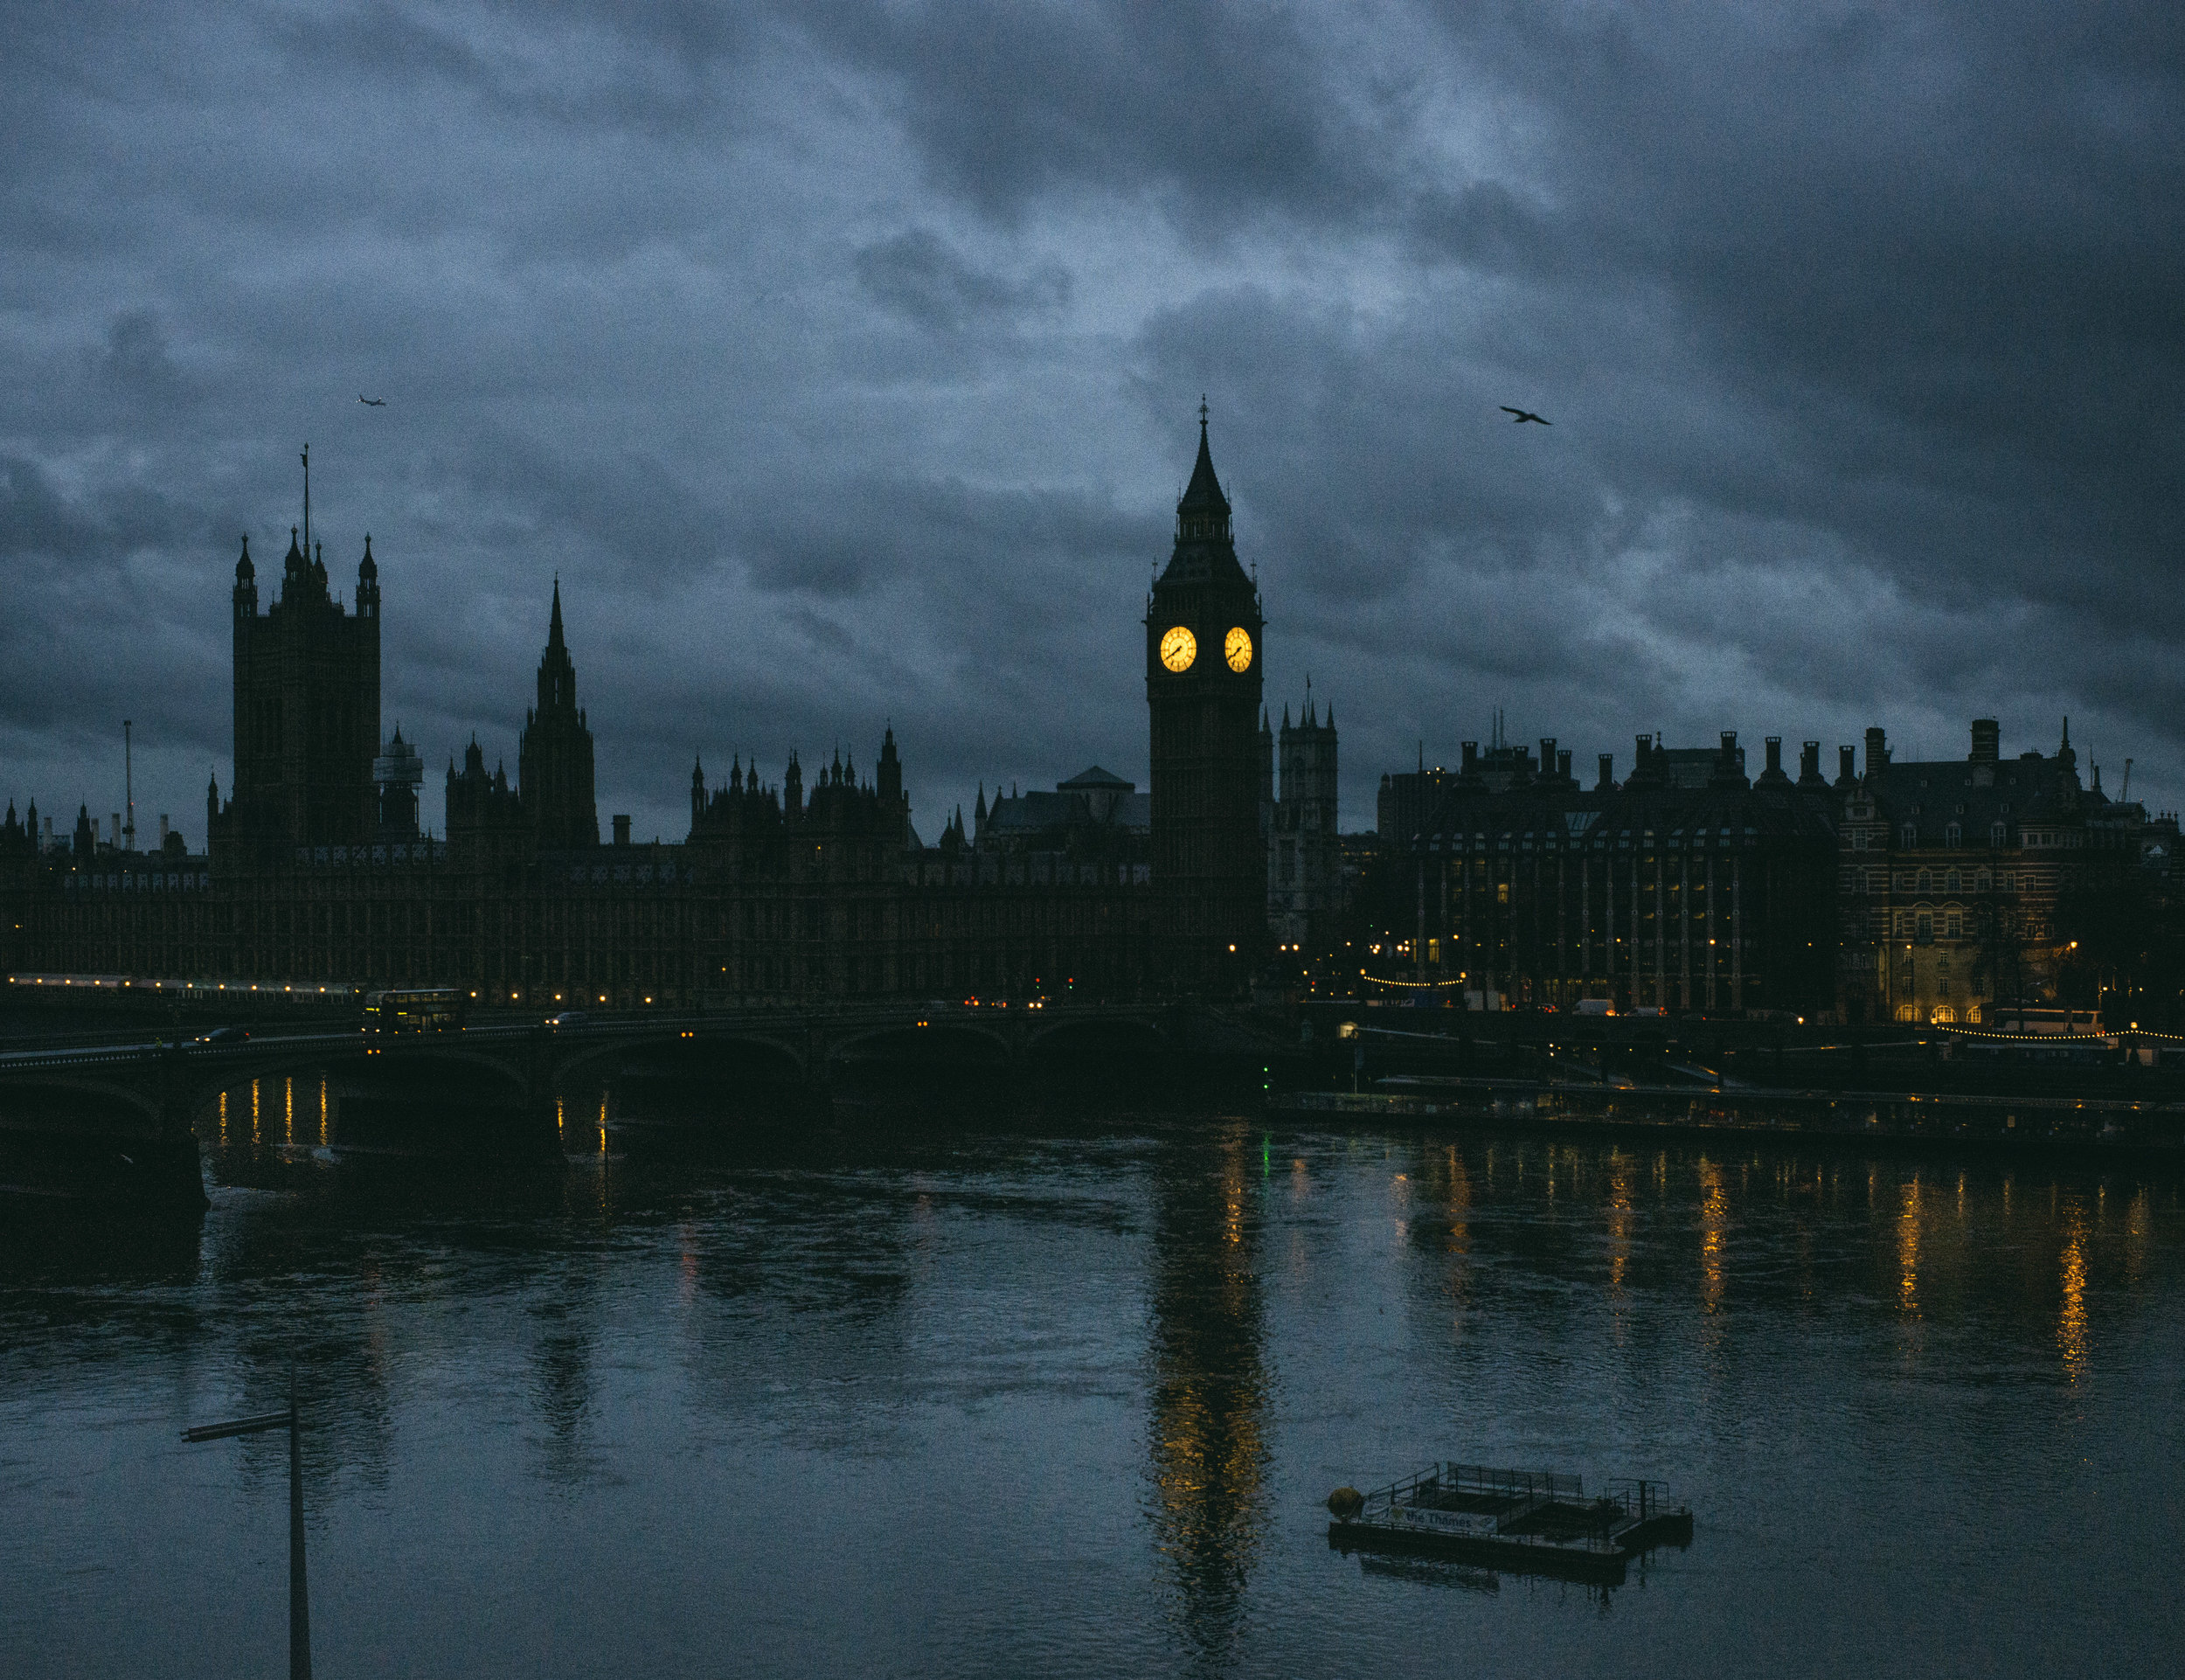 The Thames, Big Ben and Parliament at dusk.